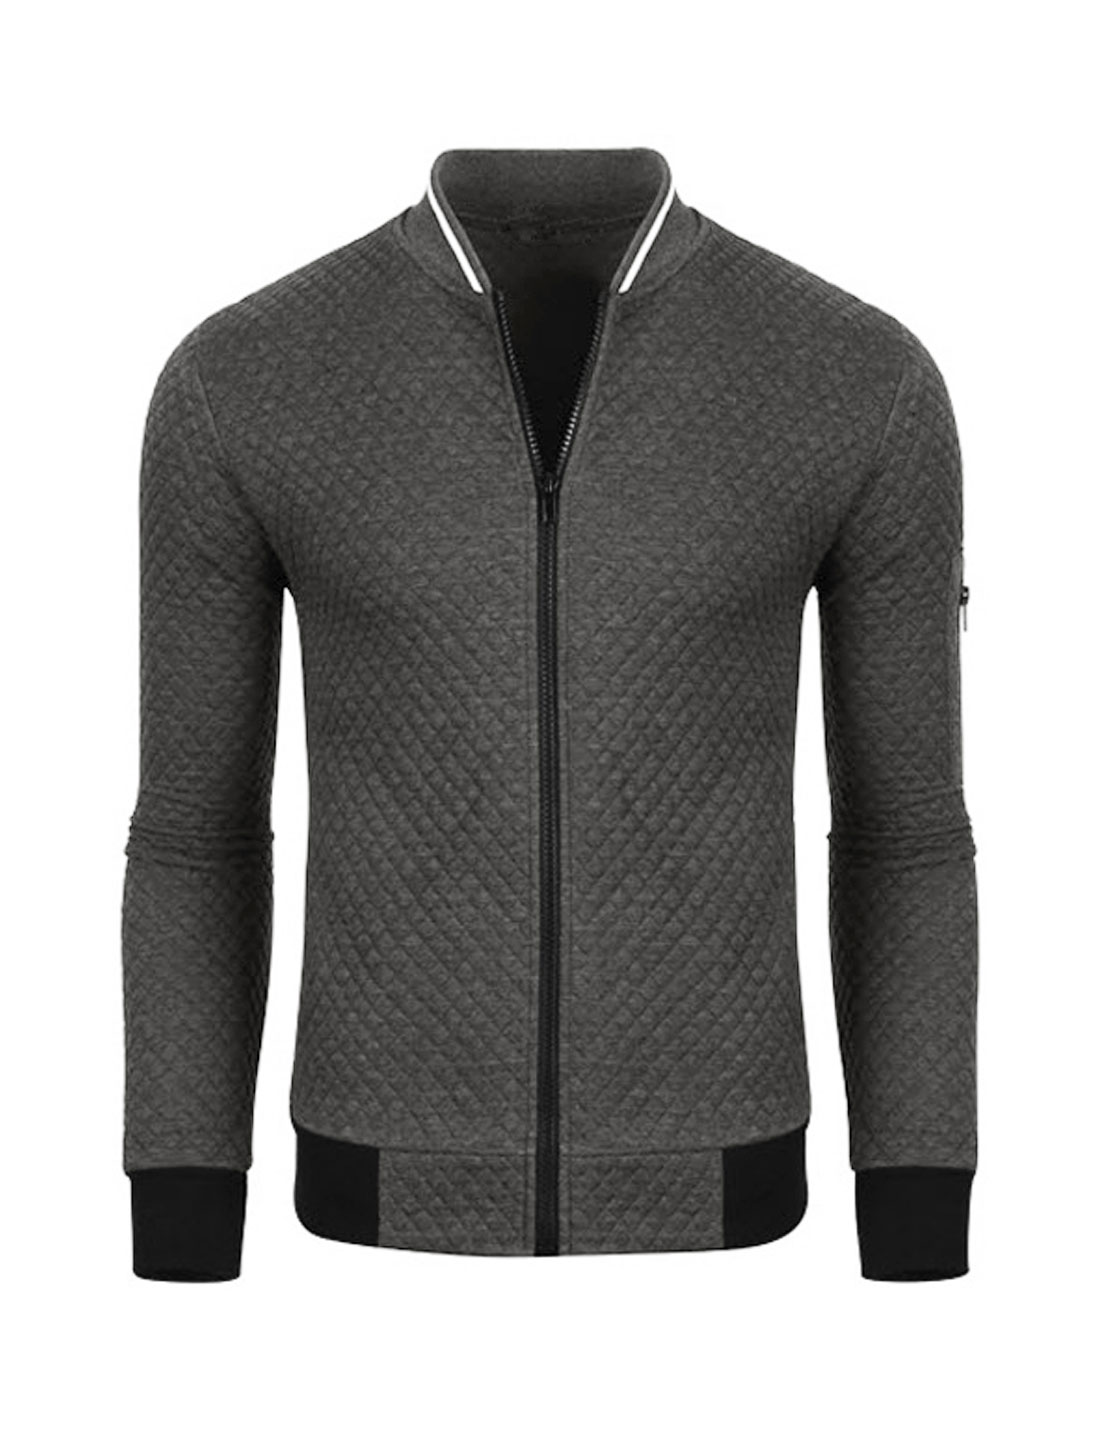 Men Zip Up Long Sleeves Stand Collar Quilted Jacket Gray M